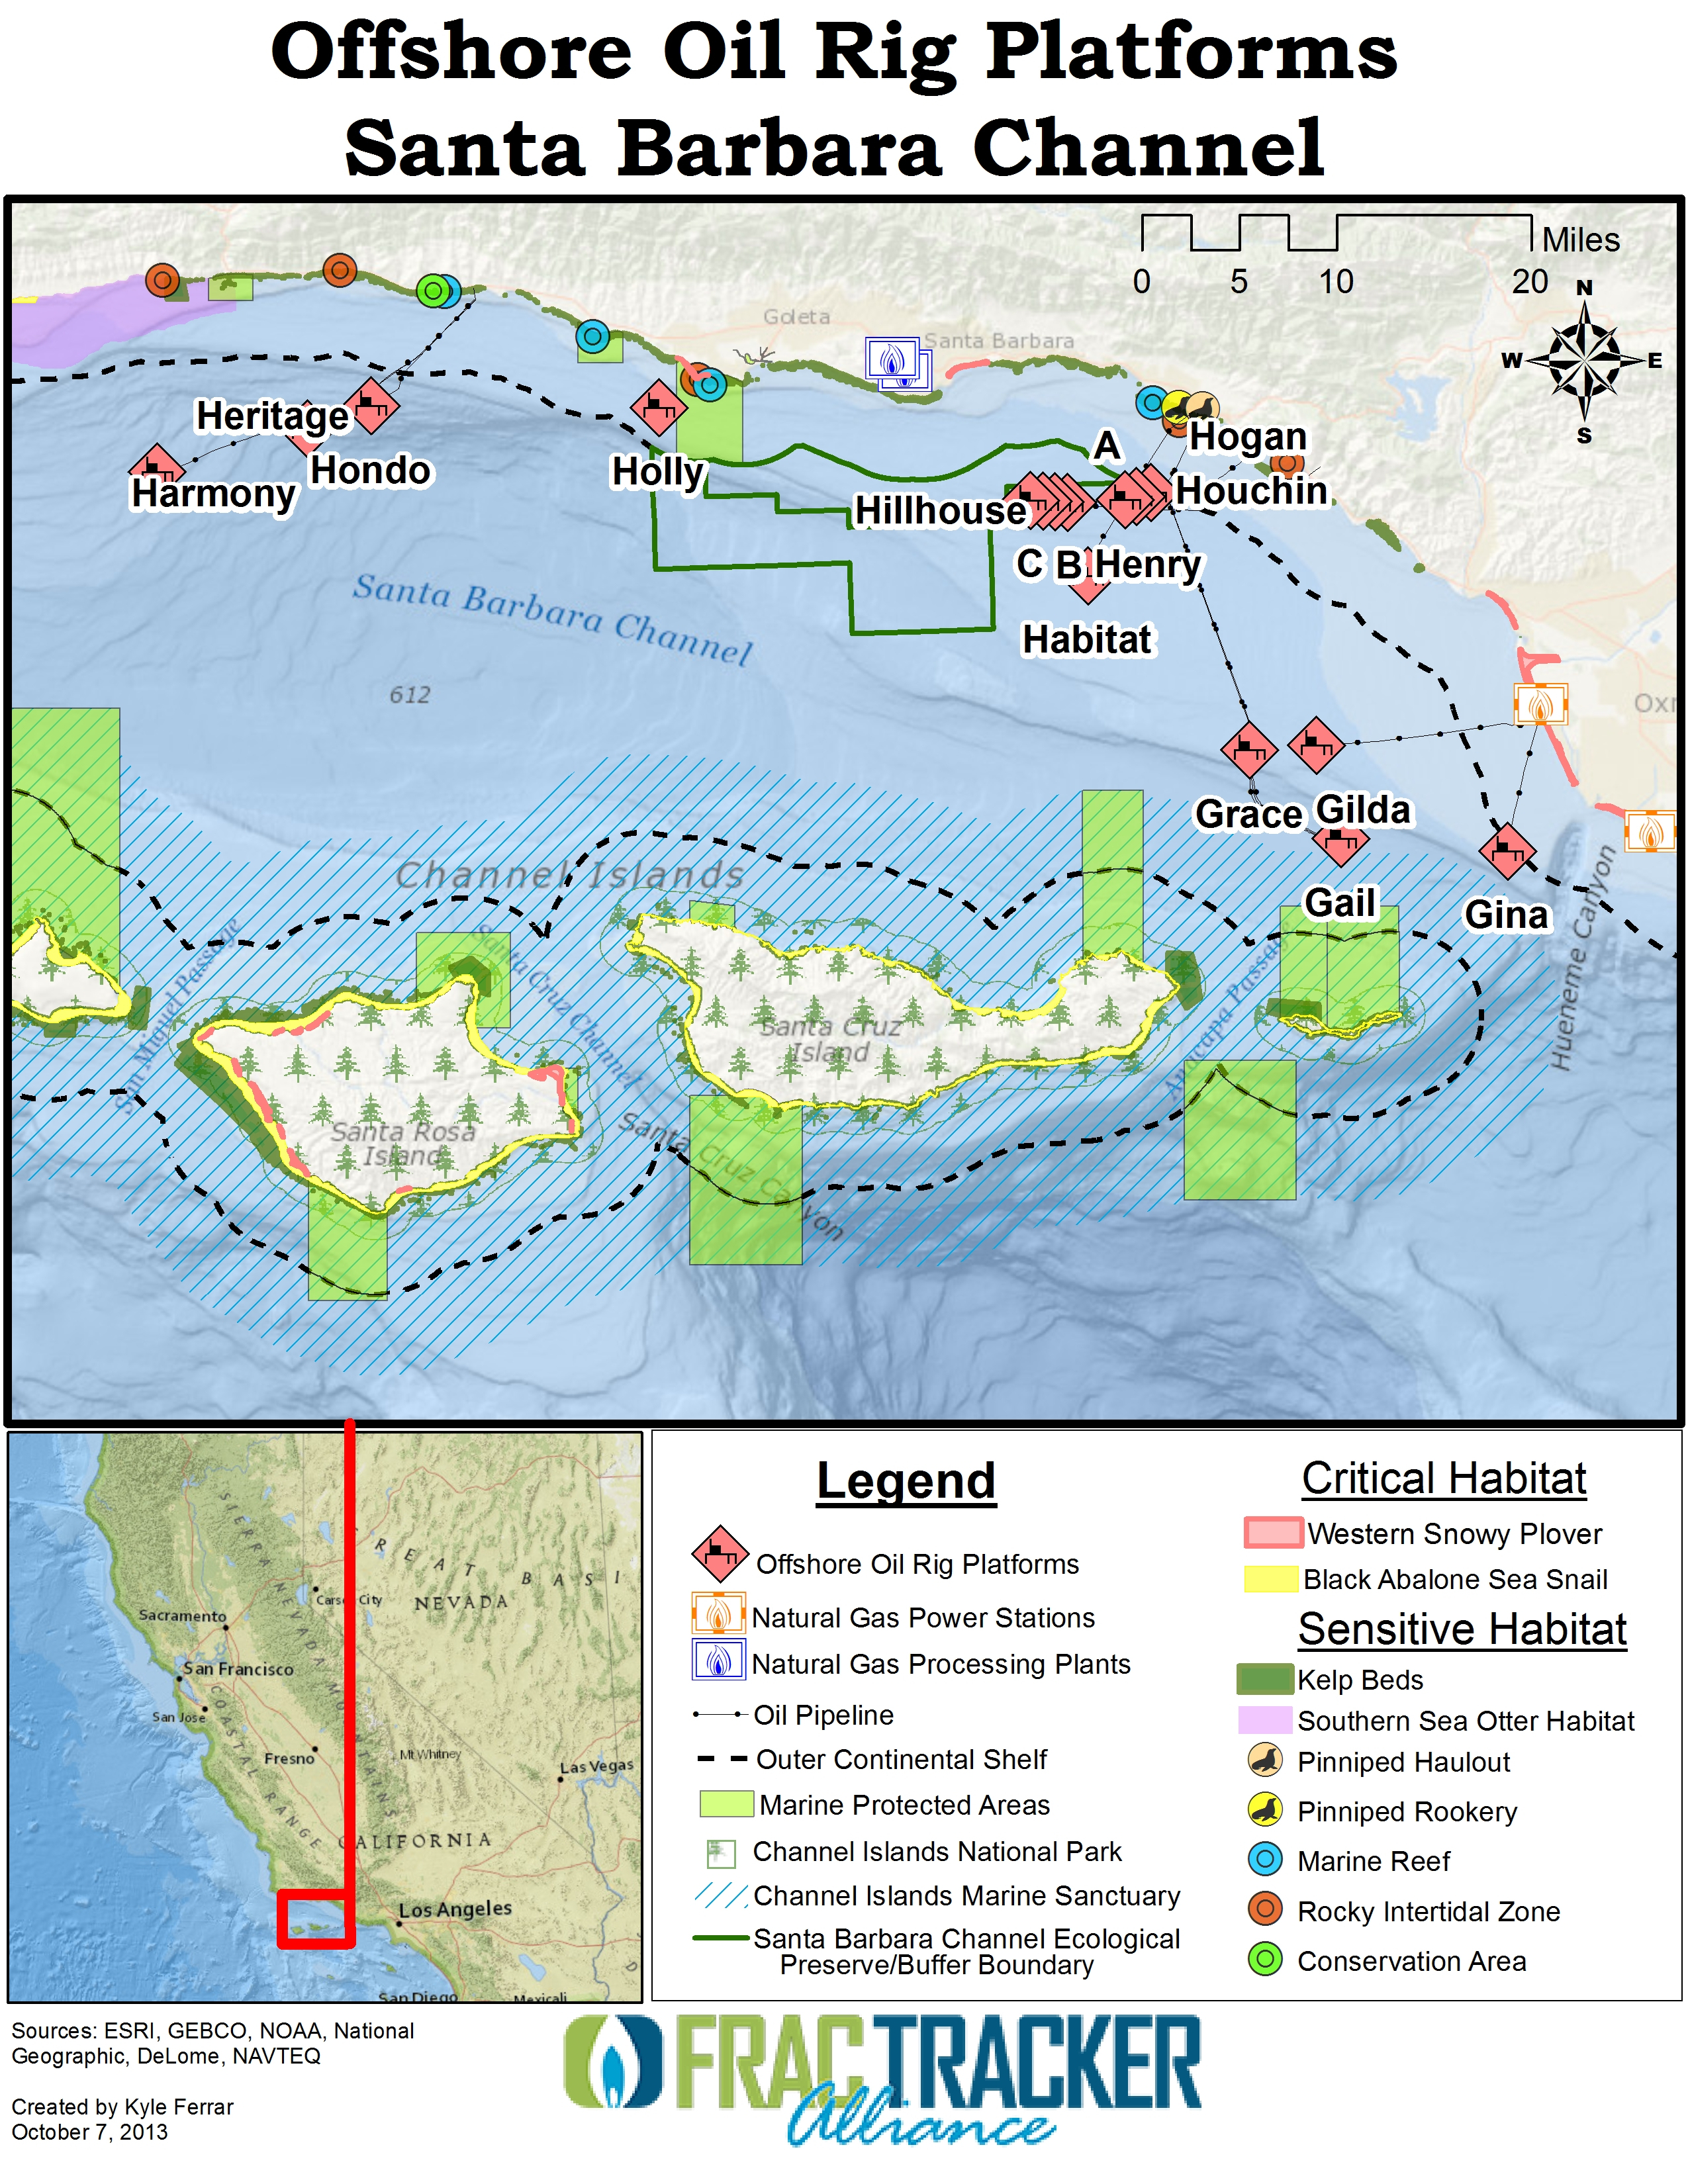 Hydraulic Fracturing Offshore Wells On The California Coast - Texas Oil Rig Fishing Map